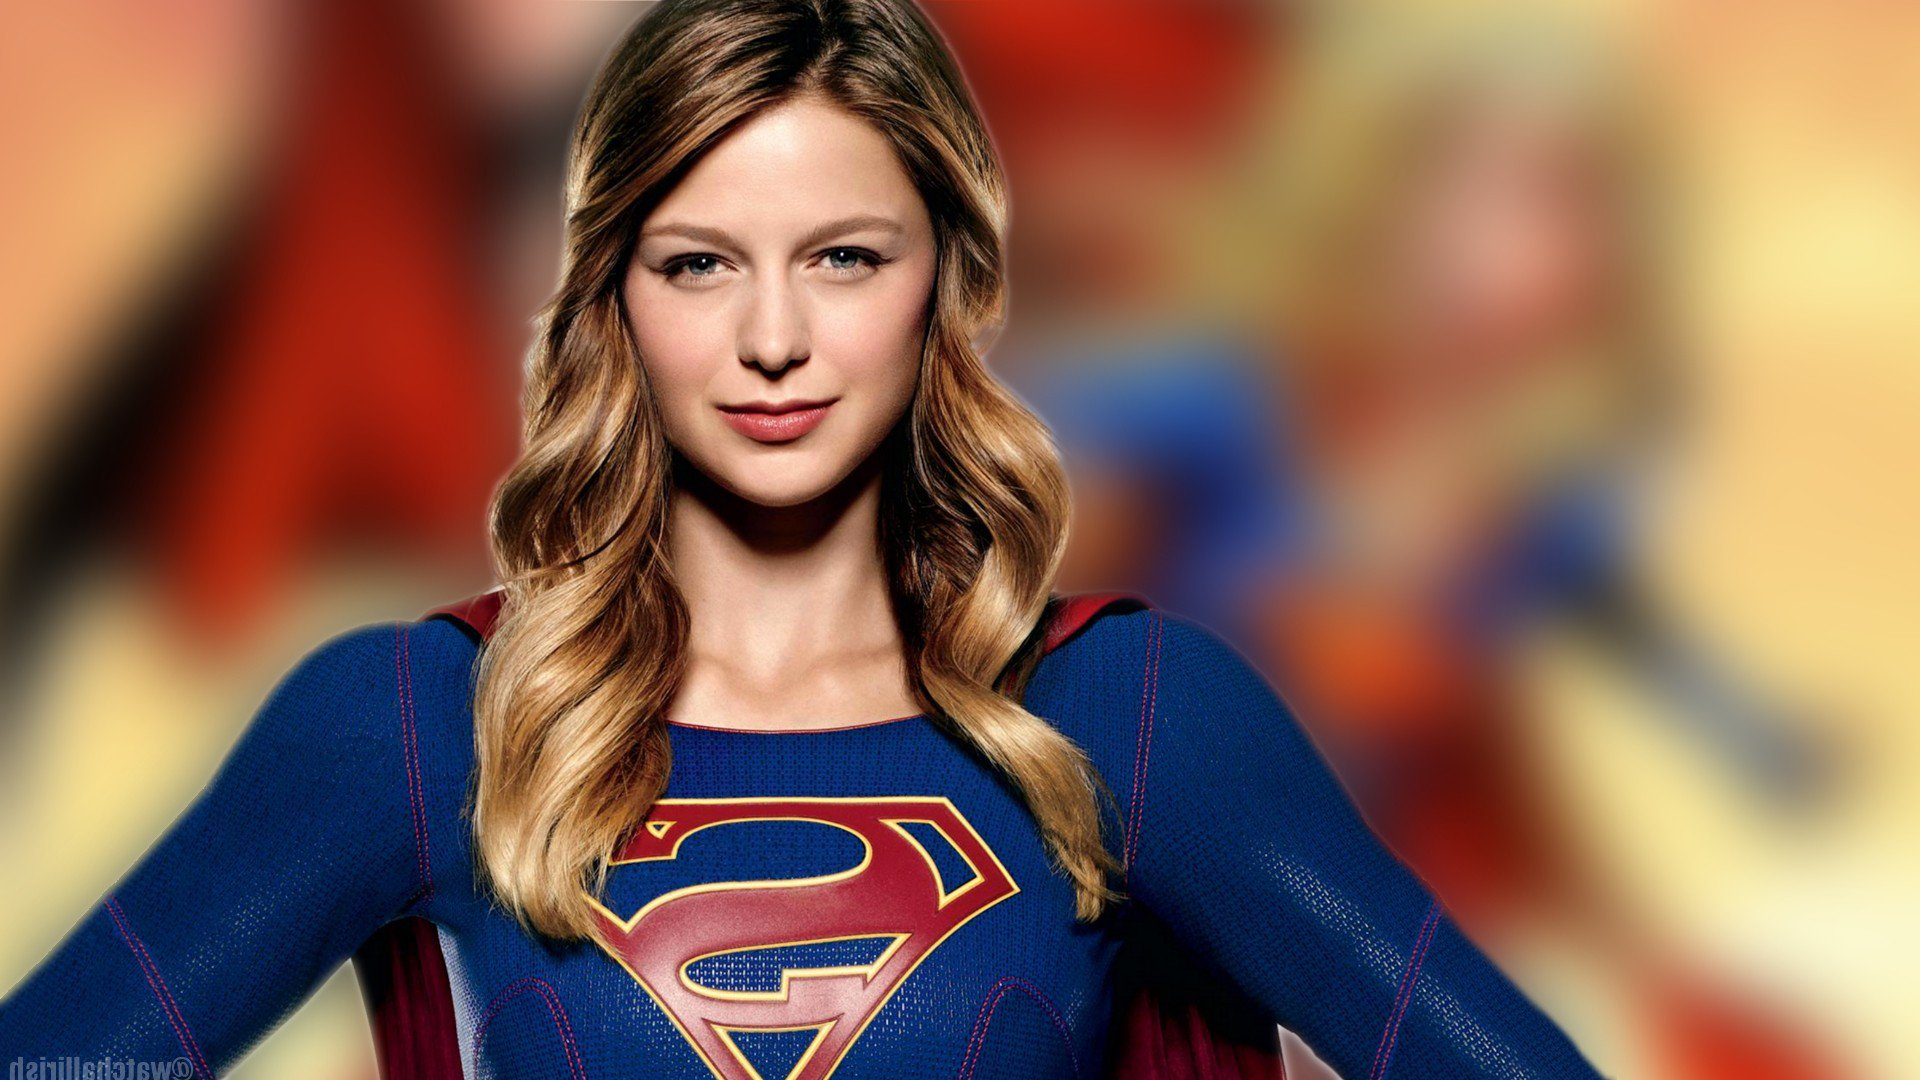 Fondos serie supergirl wallpapers gratis - Tv series wallpaper 4k ...